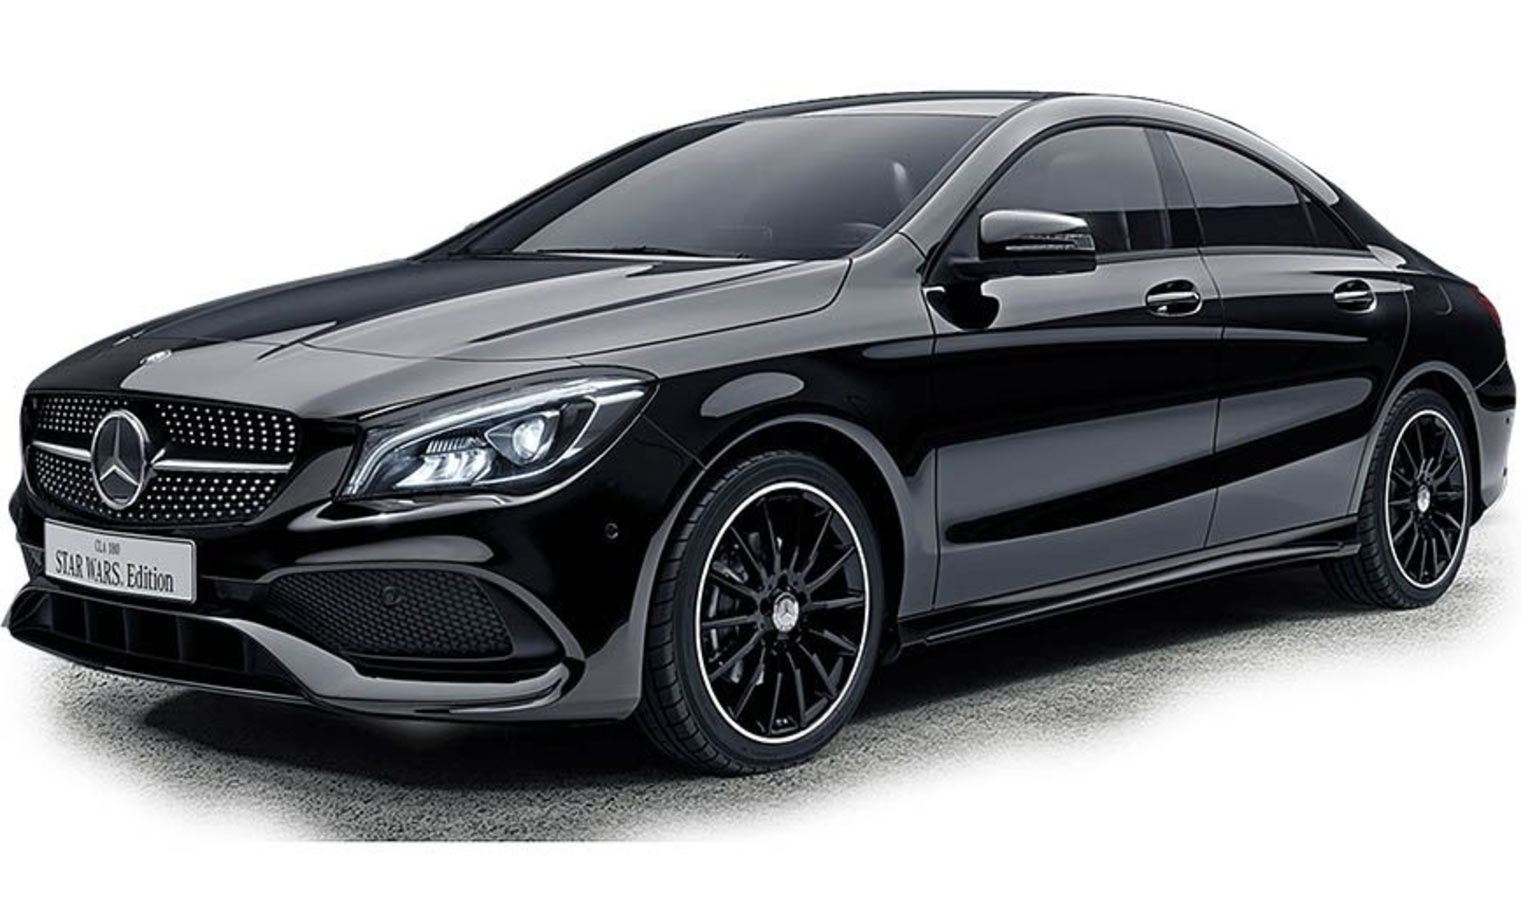 Mercedes Benz E 2017 Price >> Japan Welcomes Mercedes-Benz CLA 180 Star Wars Edition | Carscoops